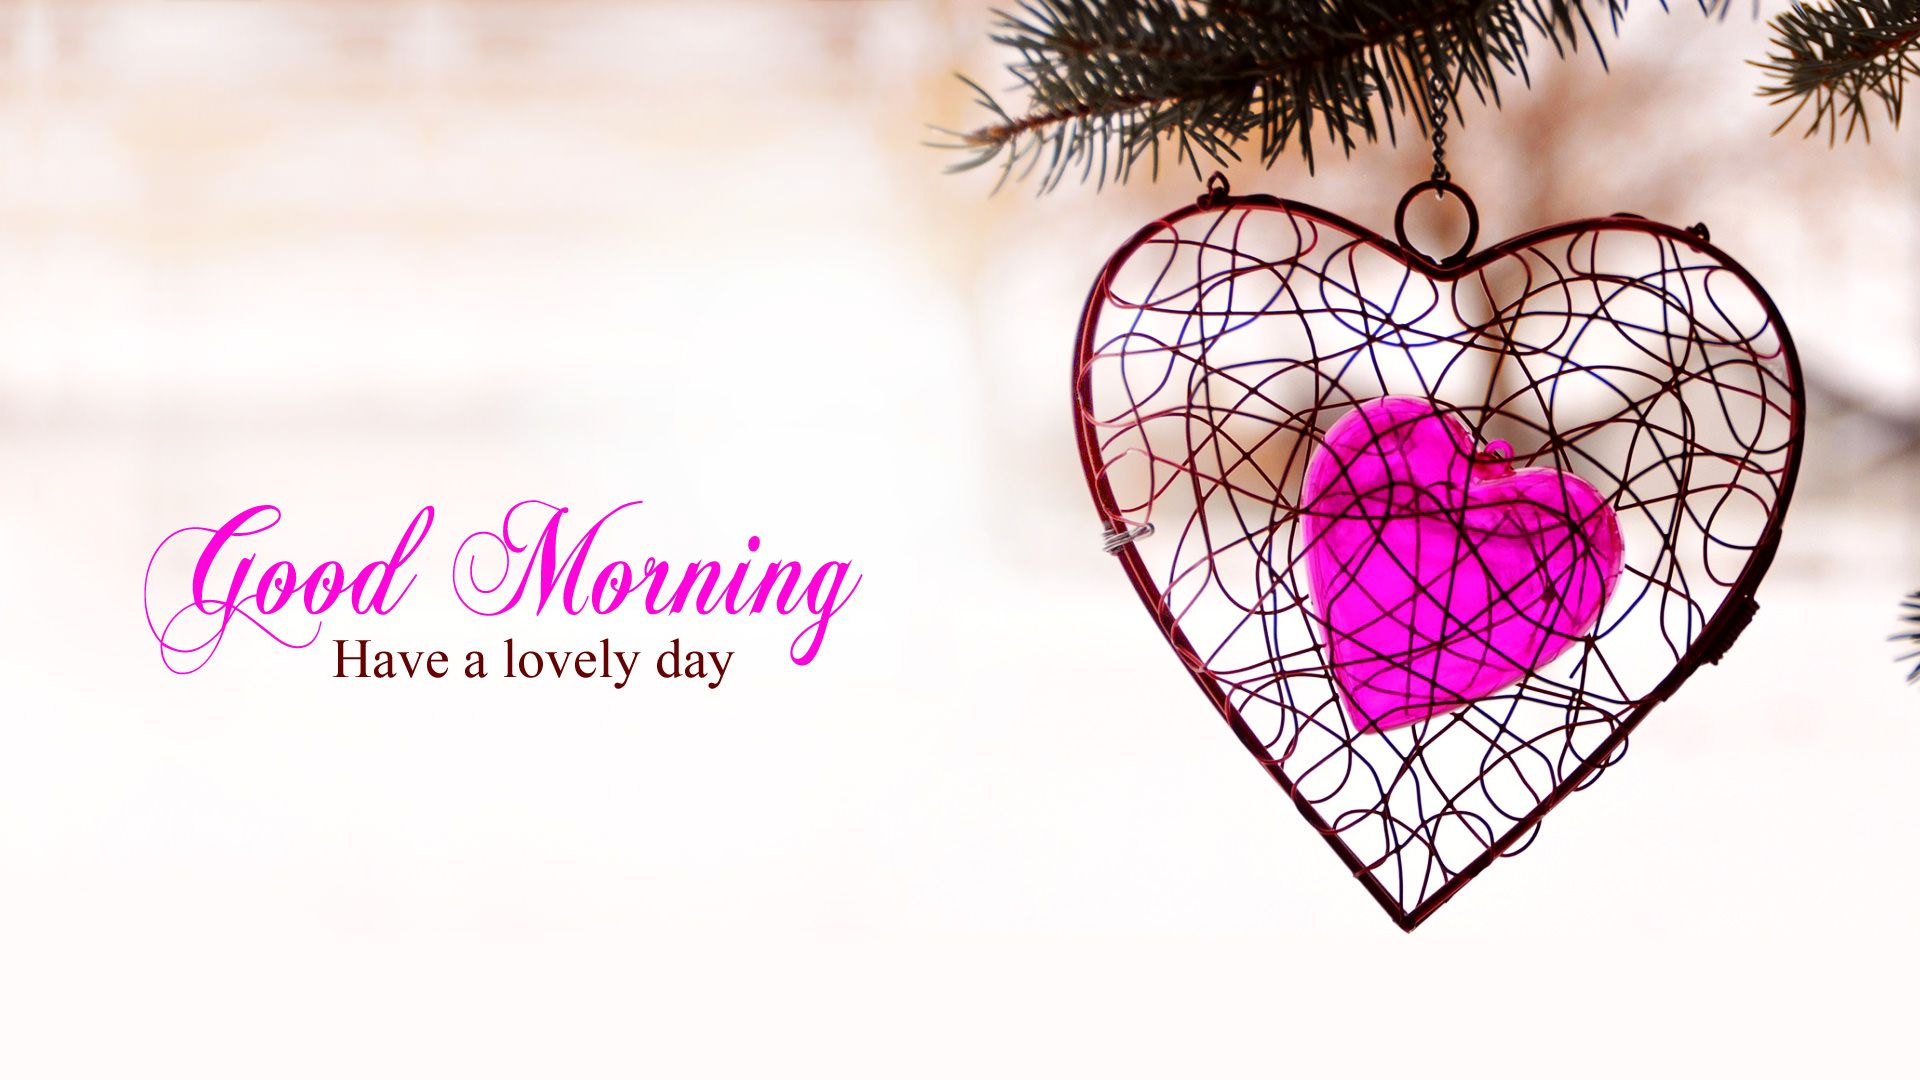 Special Good Morning Wallpaper For Lovers With Pink Heart You Can Use It Also On Valentines Day Goodmorning Love